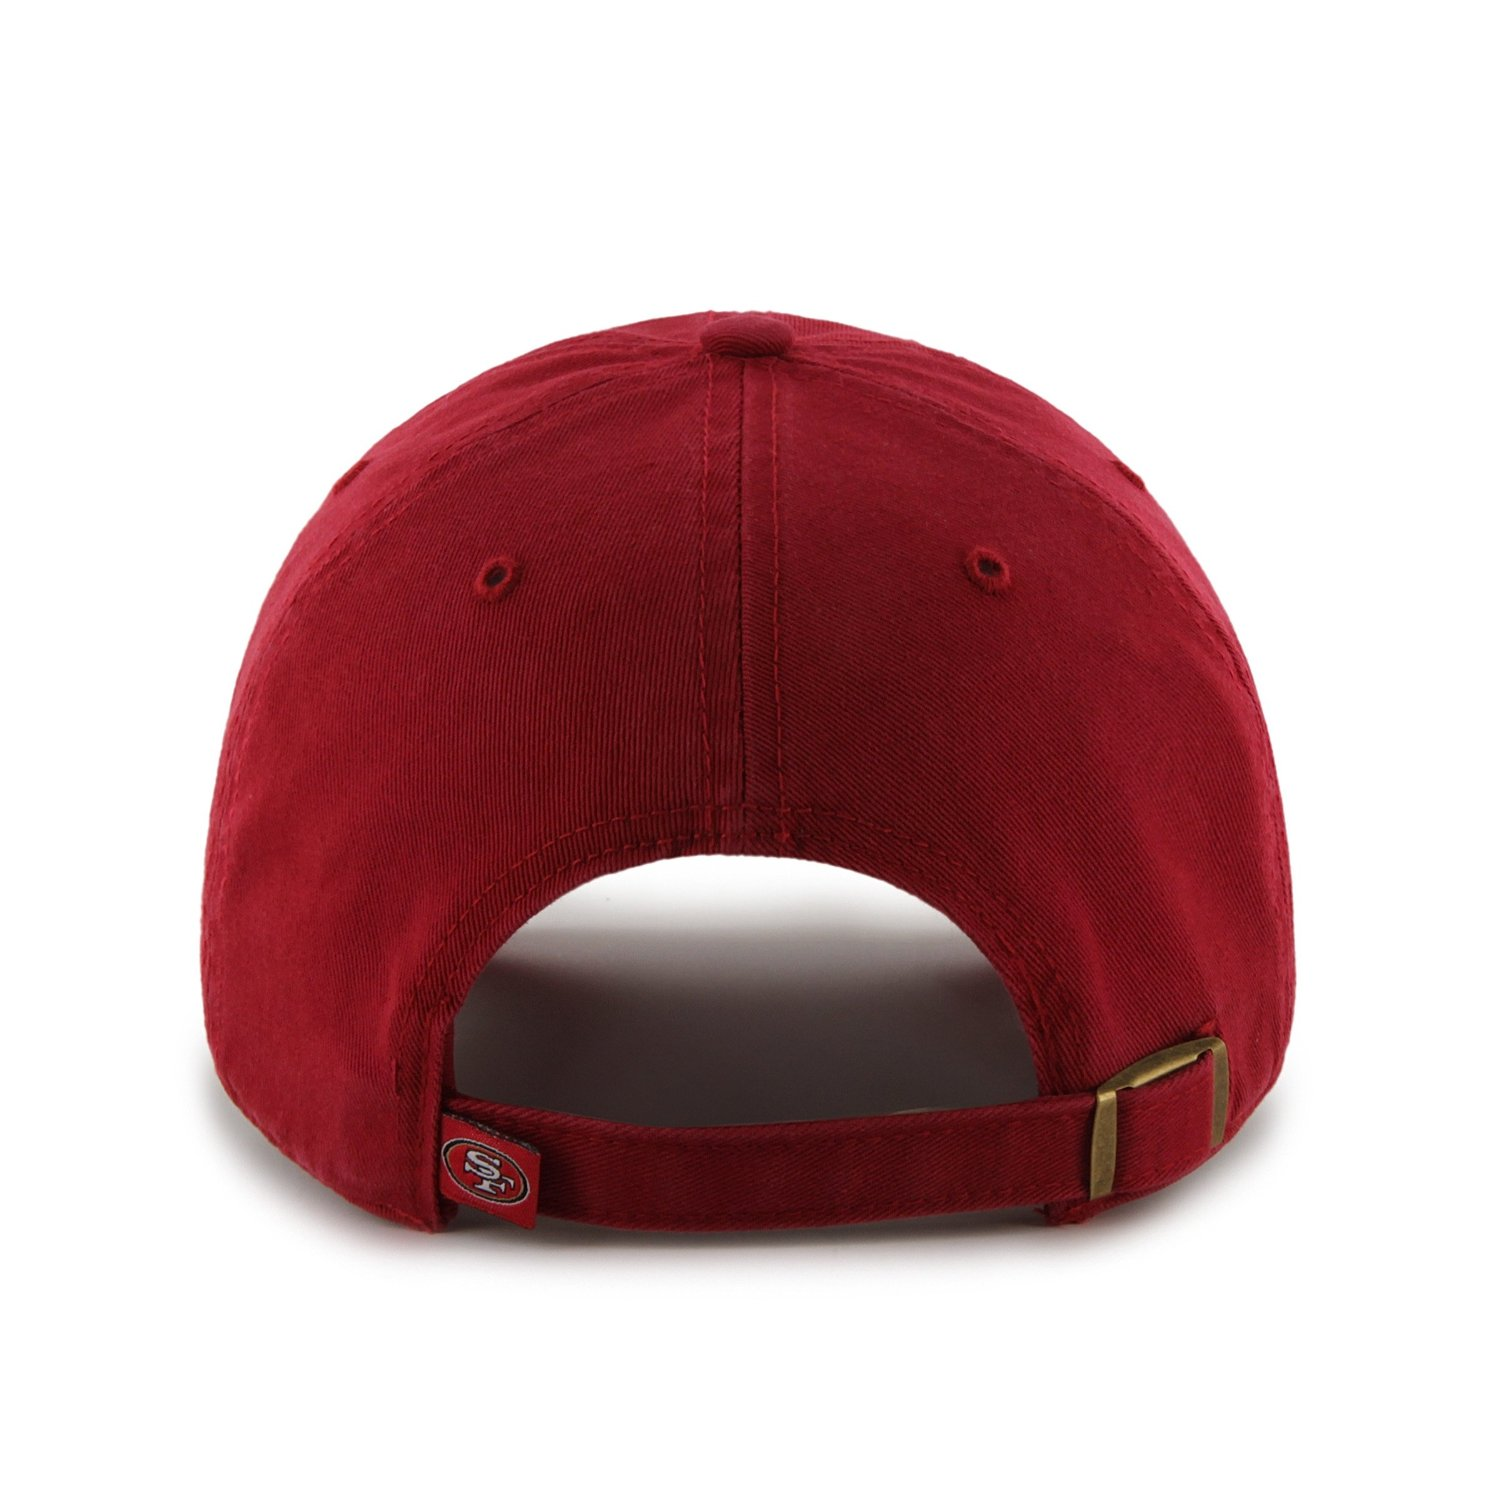 47 brand mens adjustable clean up baseball cap hat one size